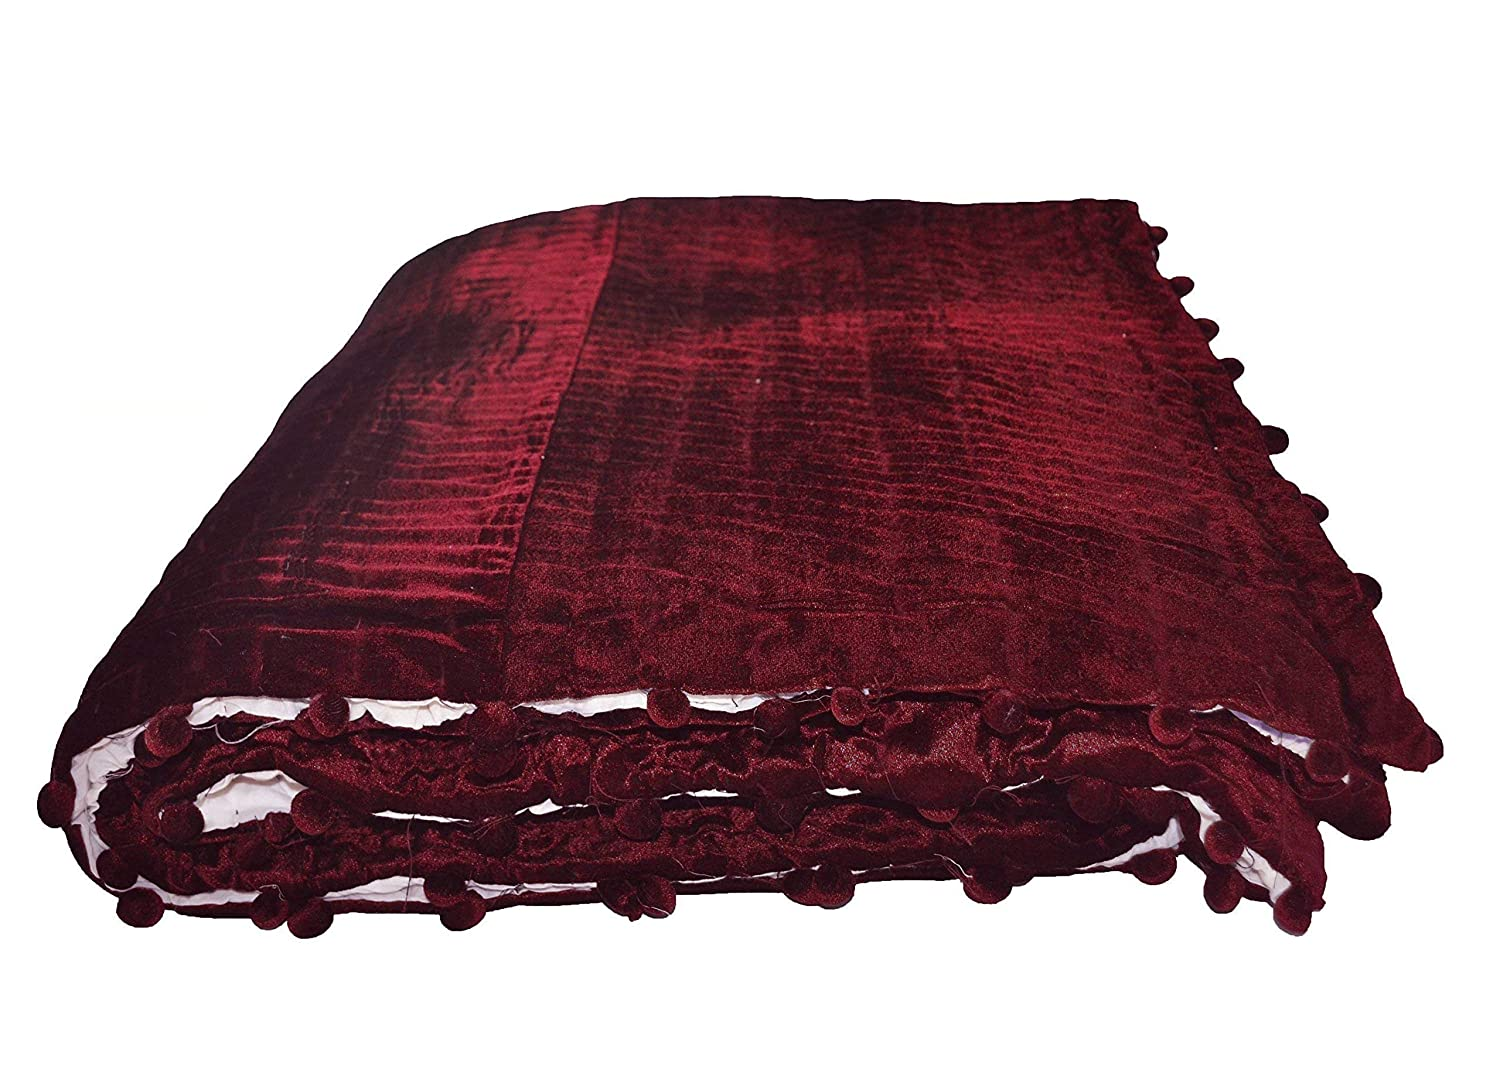 Image of Customizable Velvet Quilt with Pom Poms, Deep Red Velvet Quilt with 100% Cotton Batting, Pick Quilt Home and Kitchen